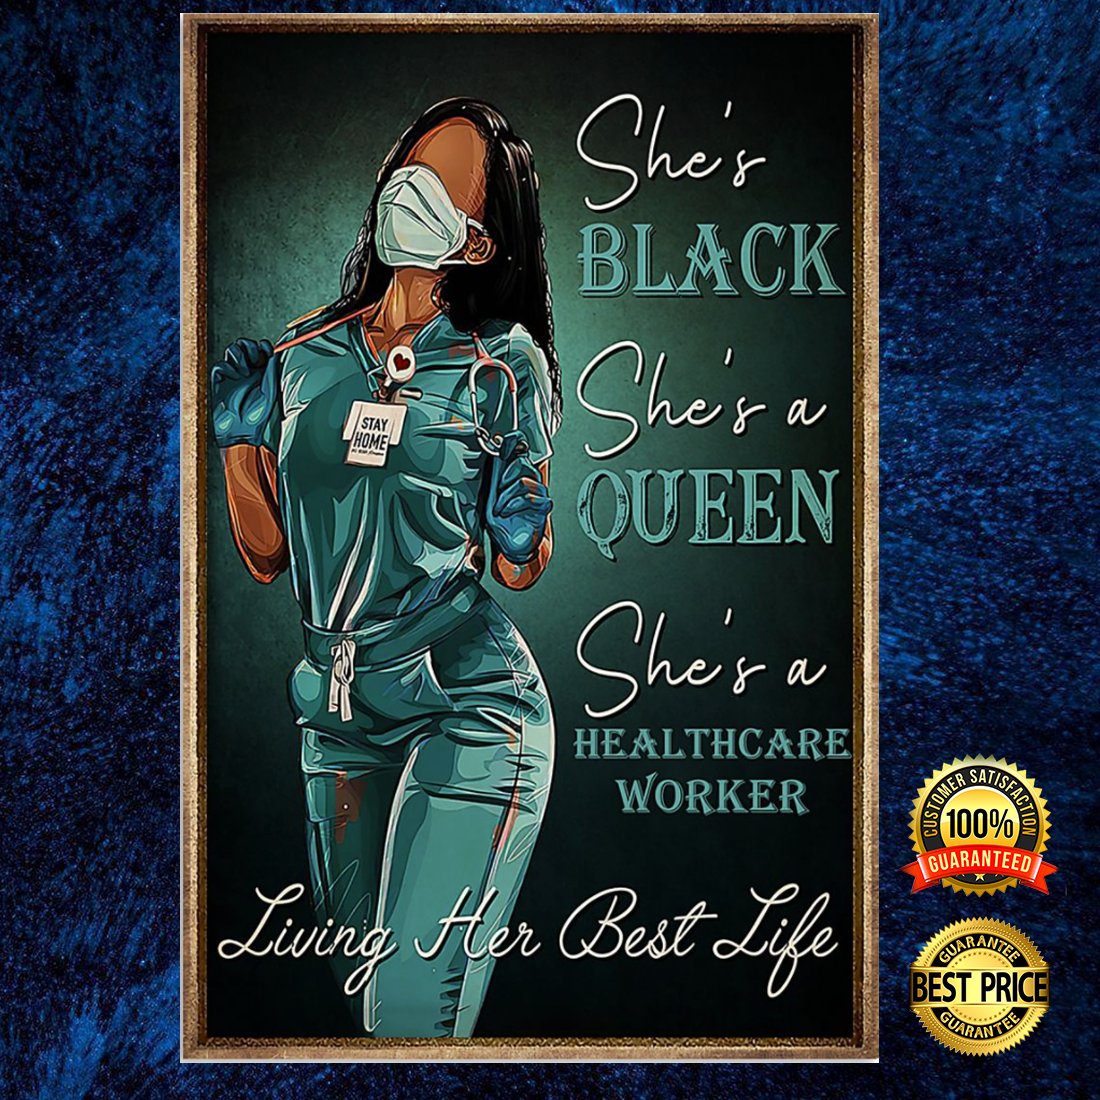 Nurse she's black she's a queen she's a healthcare worker poster 5